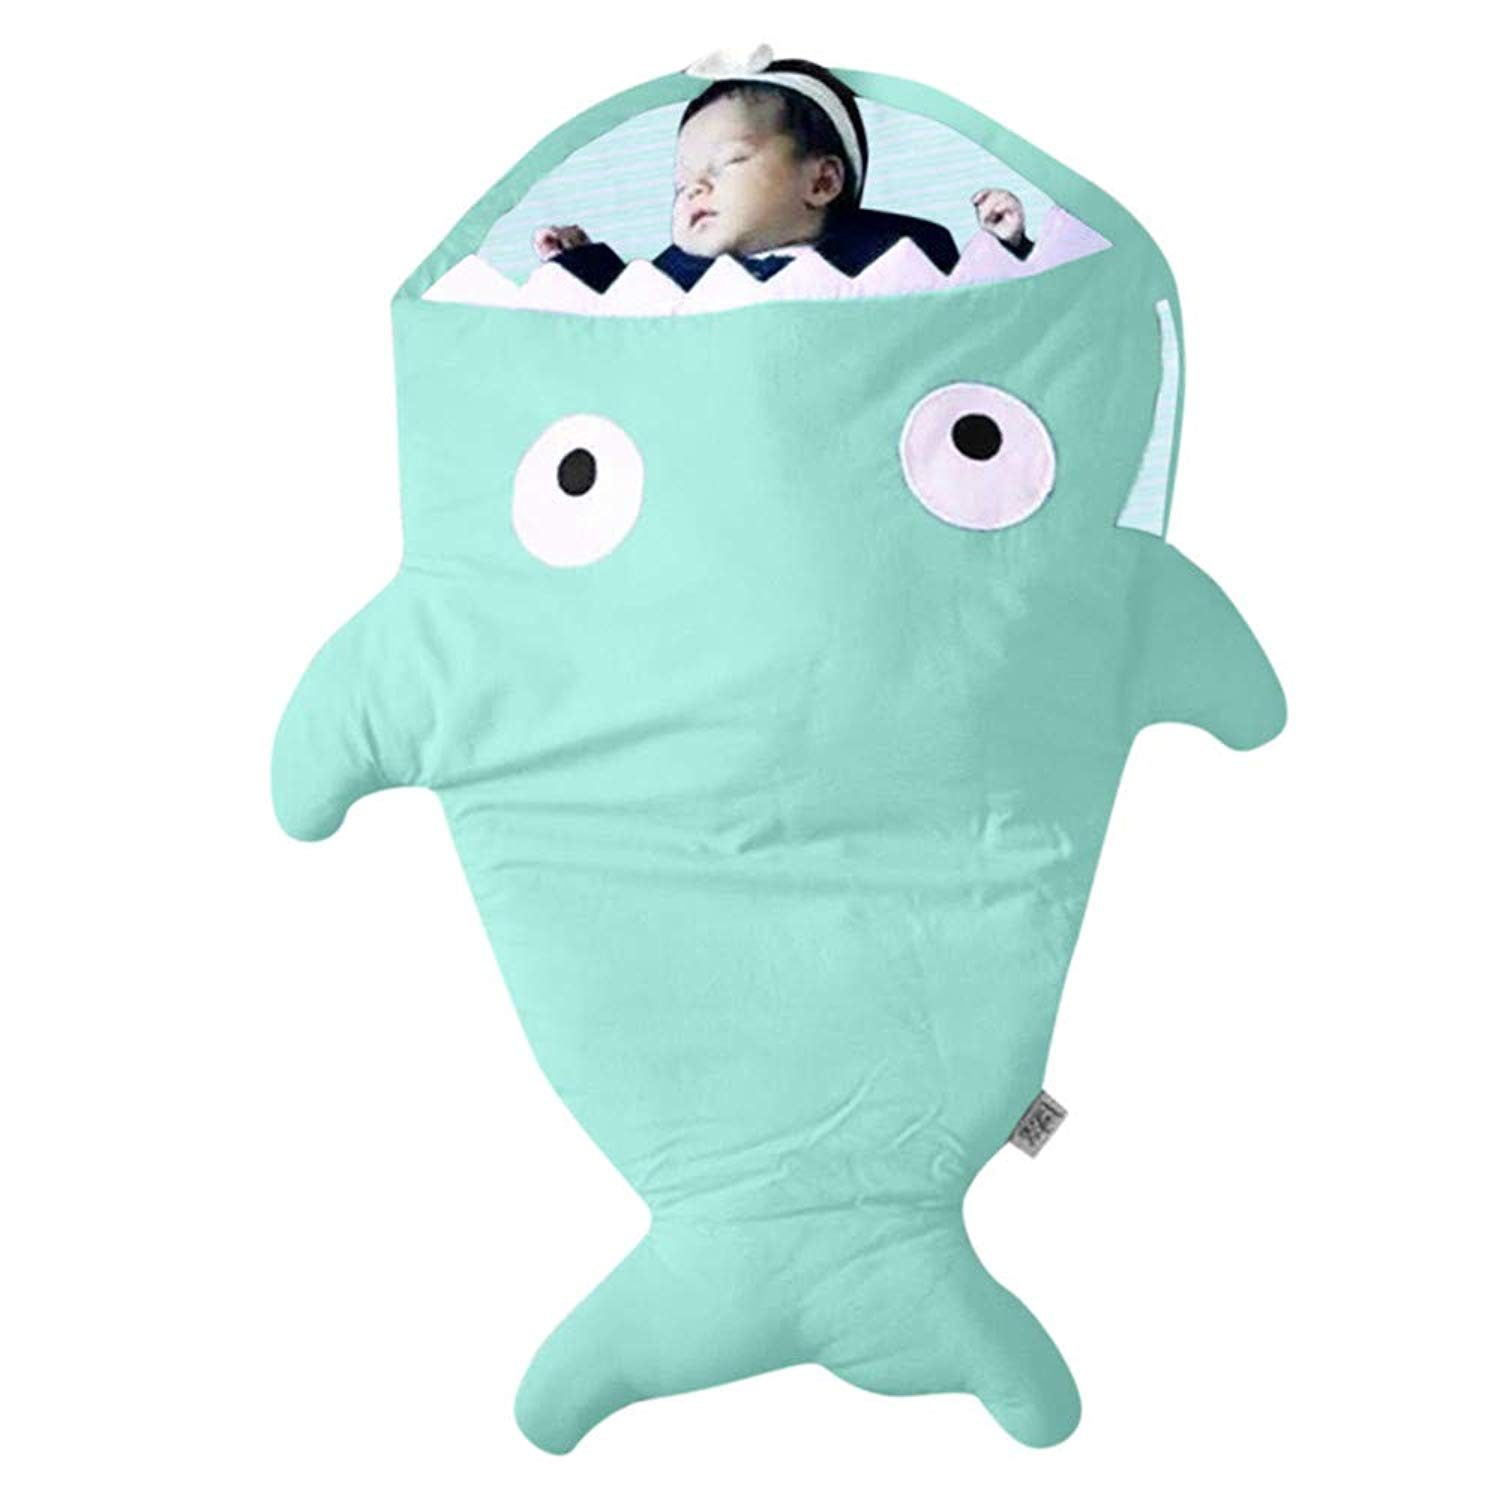 Sothread Newborn Baby Boys Girls Shark Receiving Blanket Sleeping Bag Swaddle Sleeping Swaddle Muslin Wrap